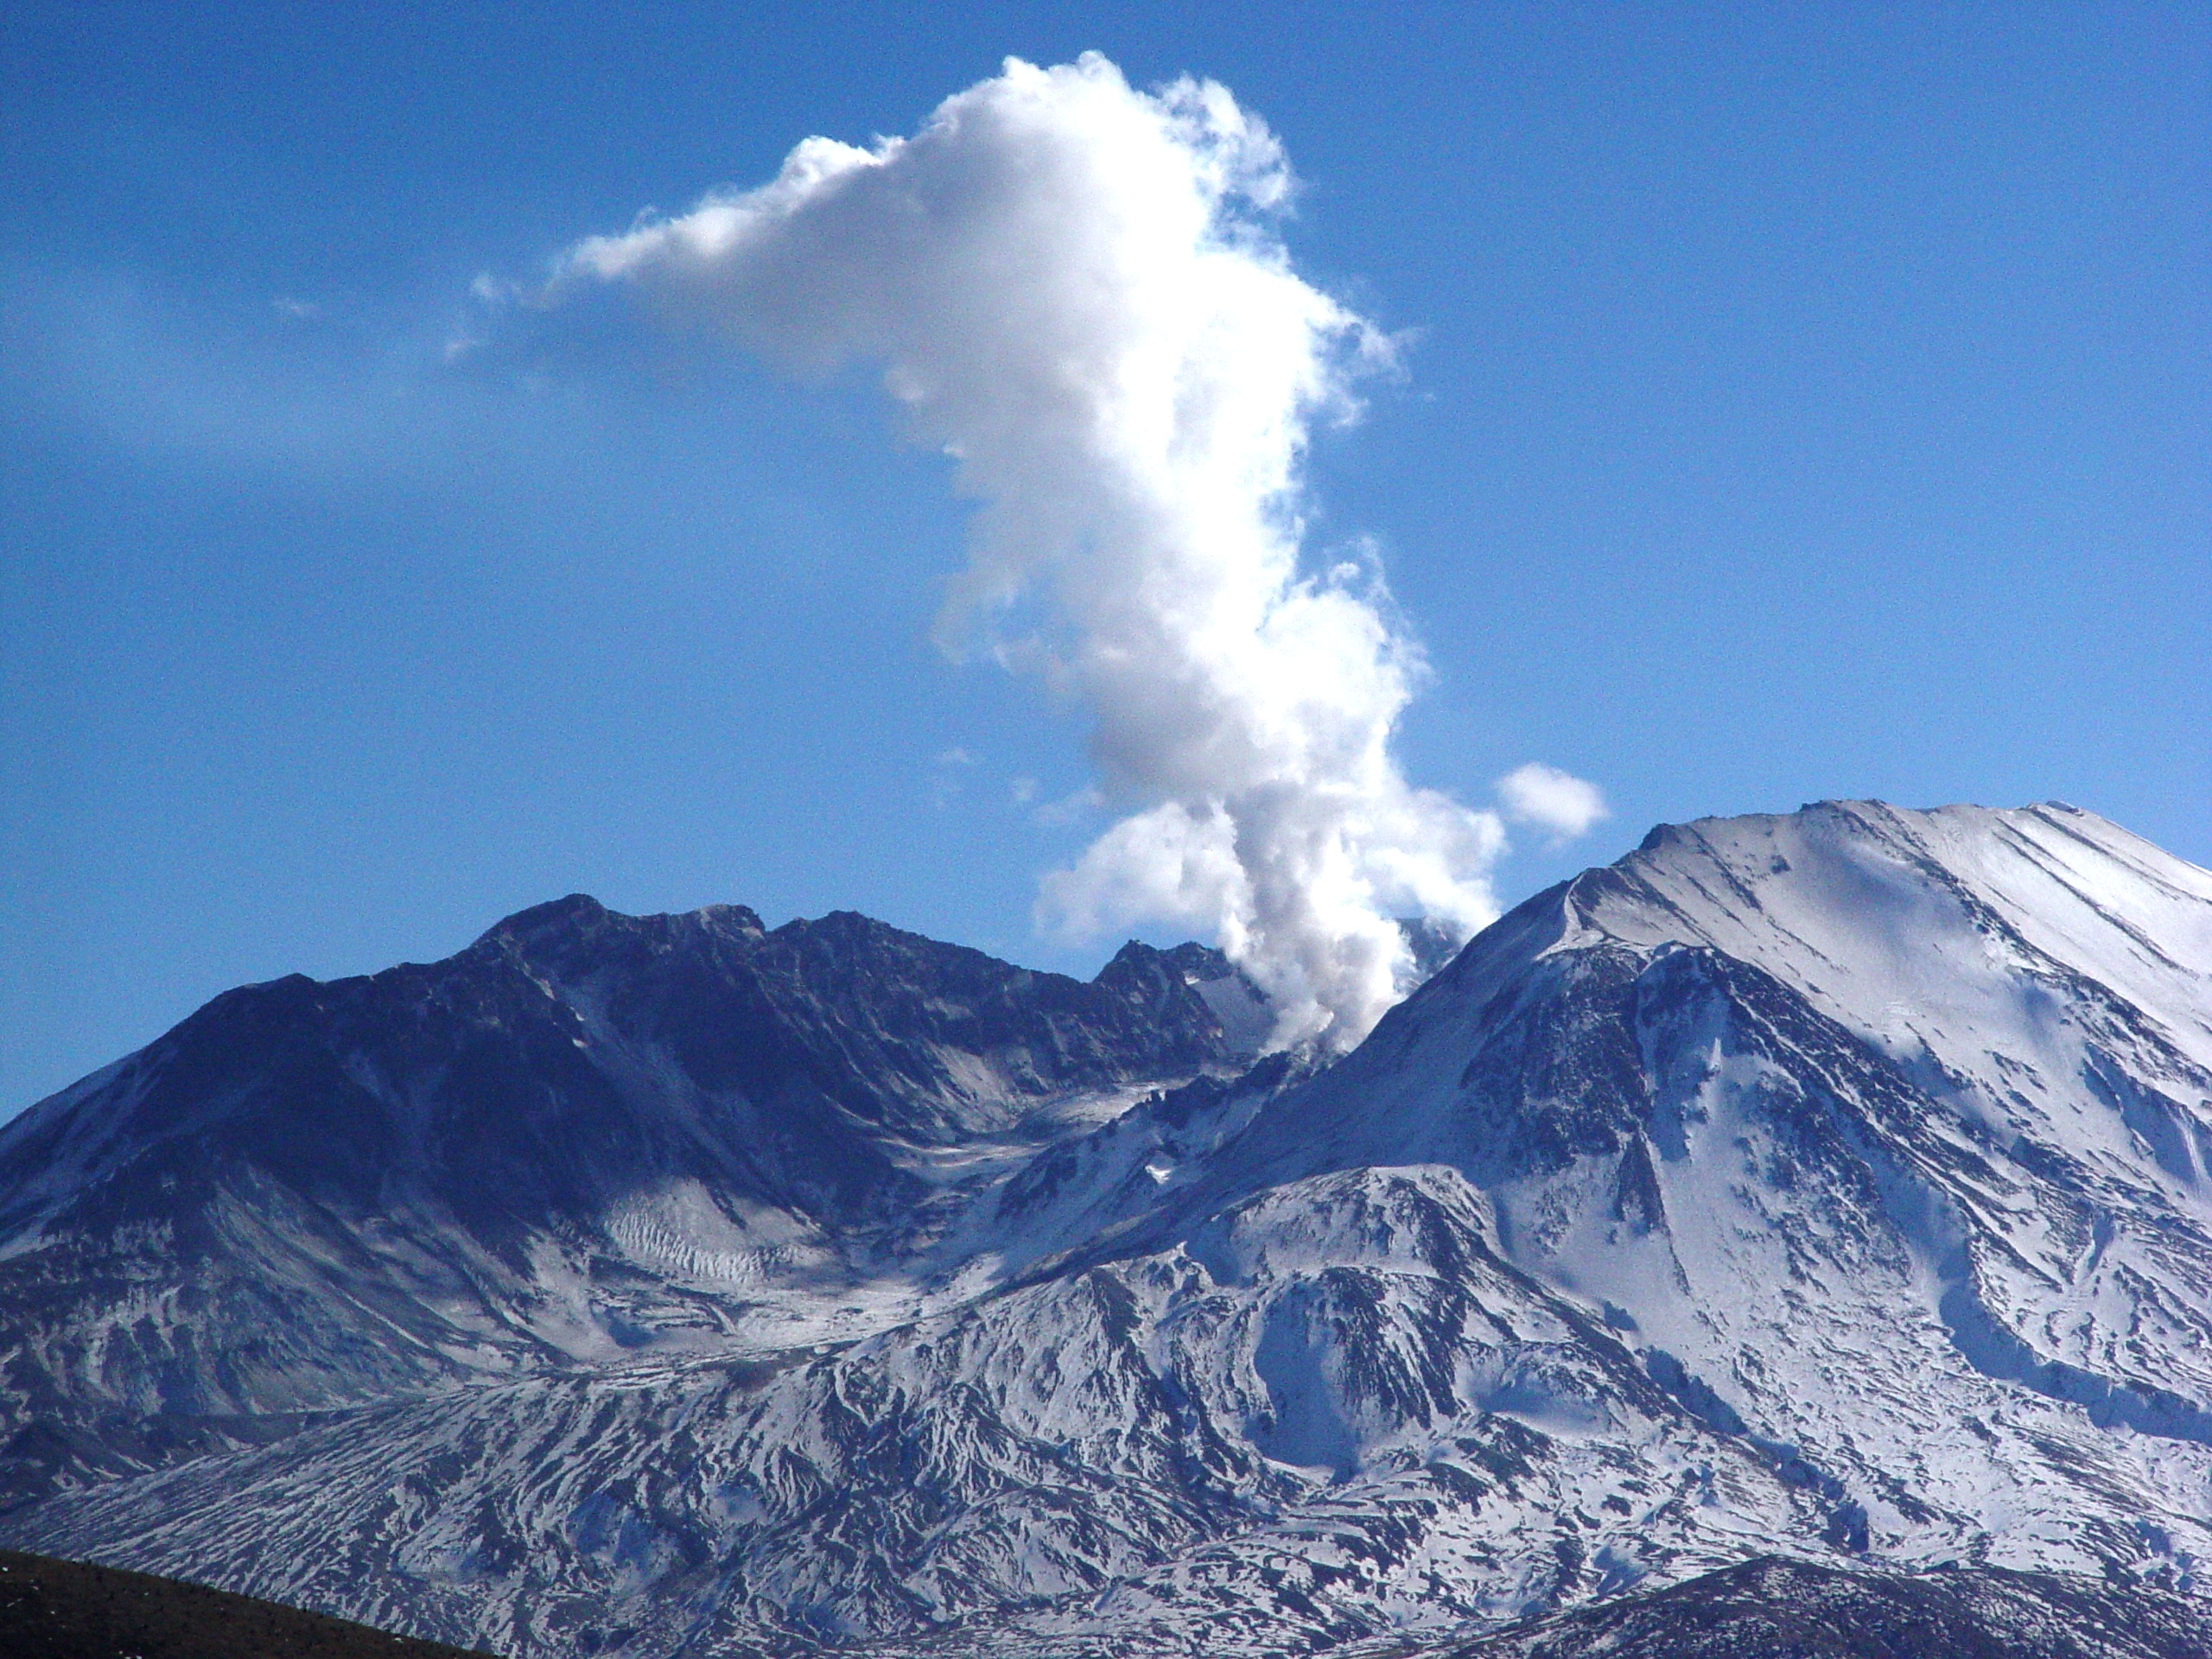 Mt St Helens puffing a large cloud of smoke